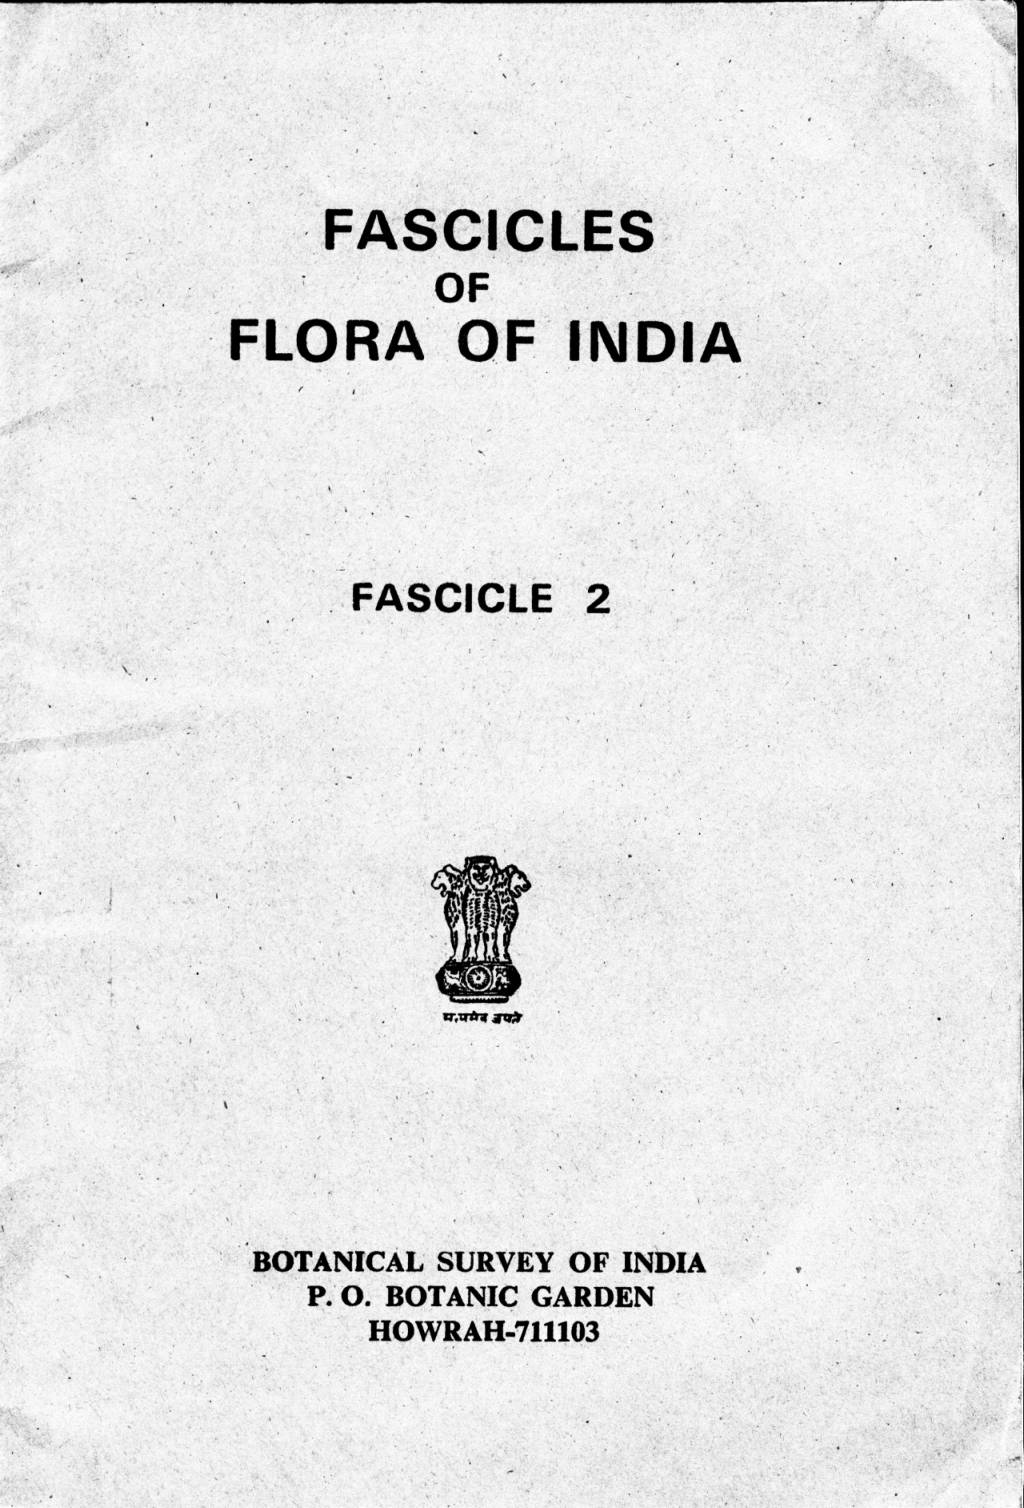 FASCICLES OF FLORA OF INDIA FASCICLE 2